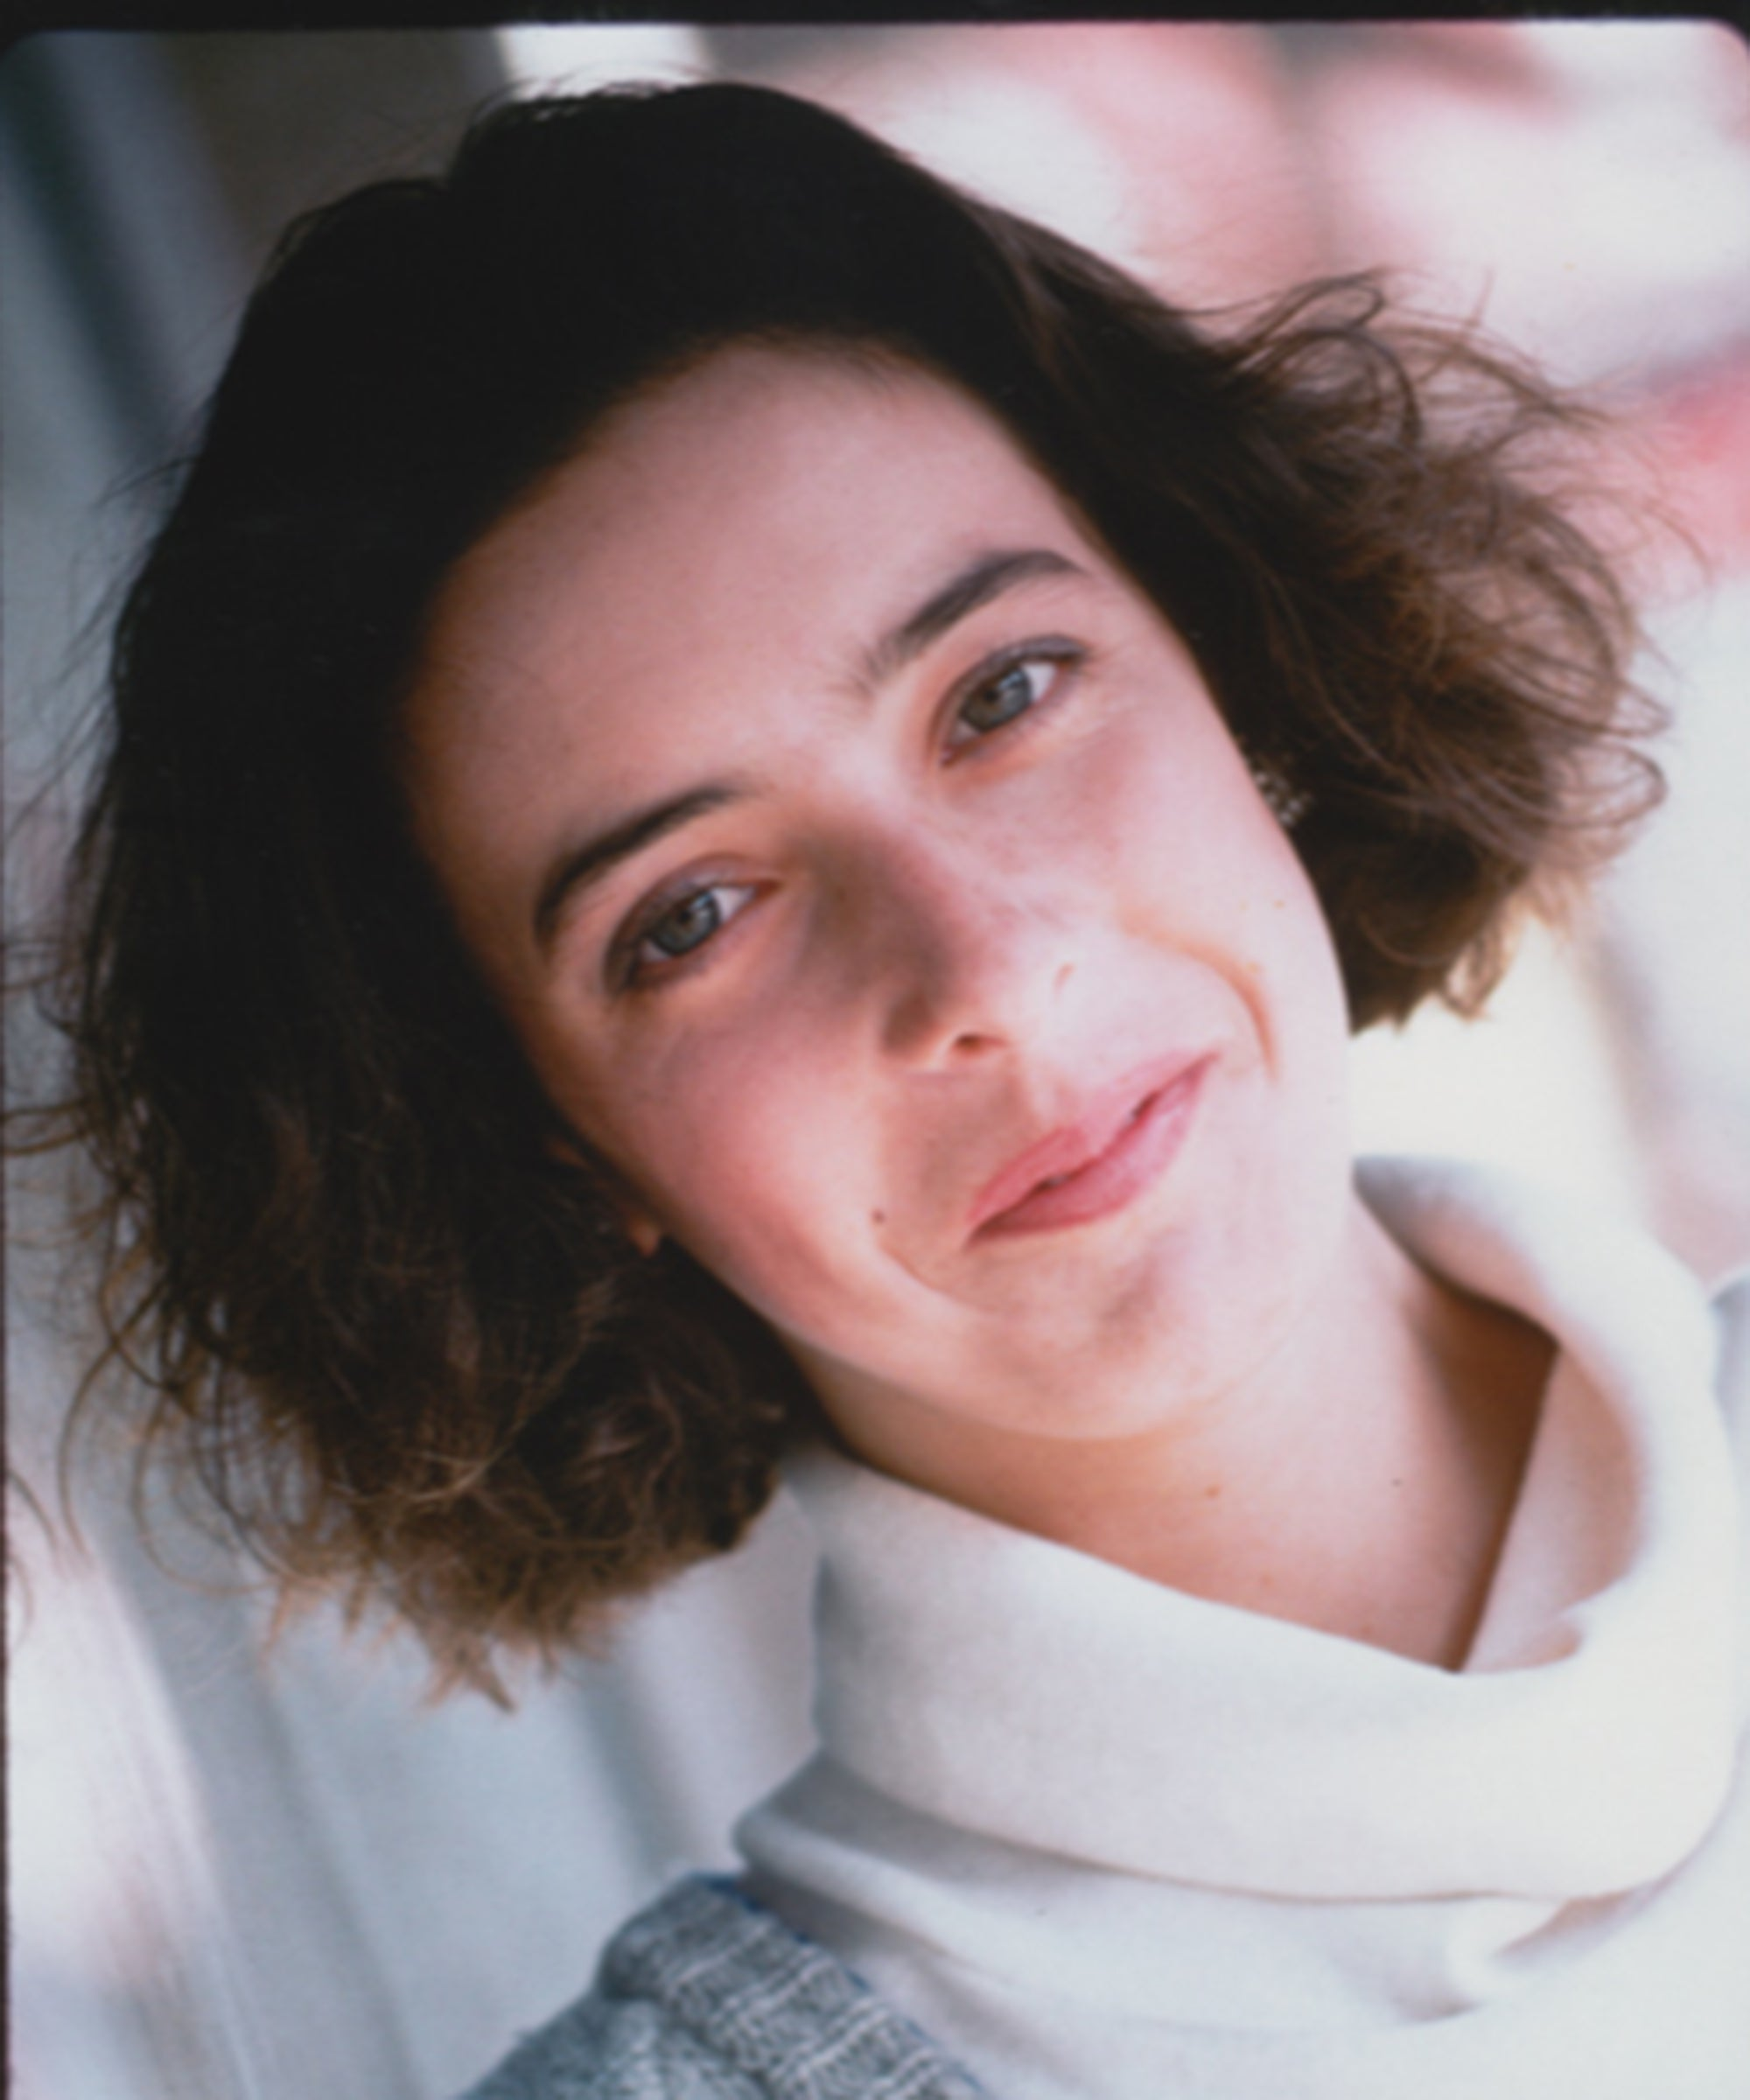 What Happened To Jennifer Levin From The Preppy Murder?